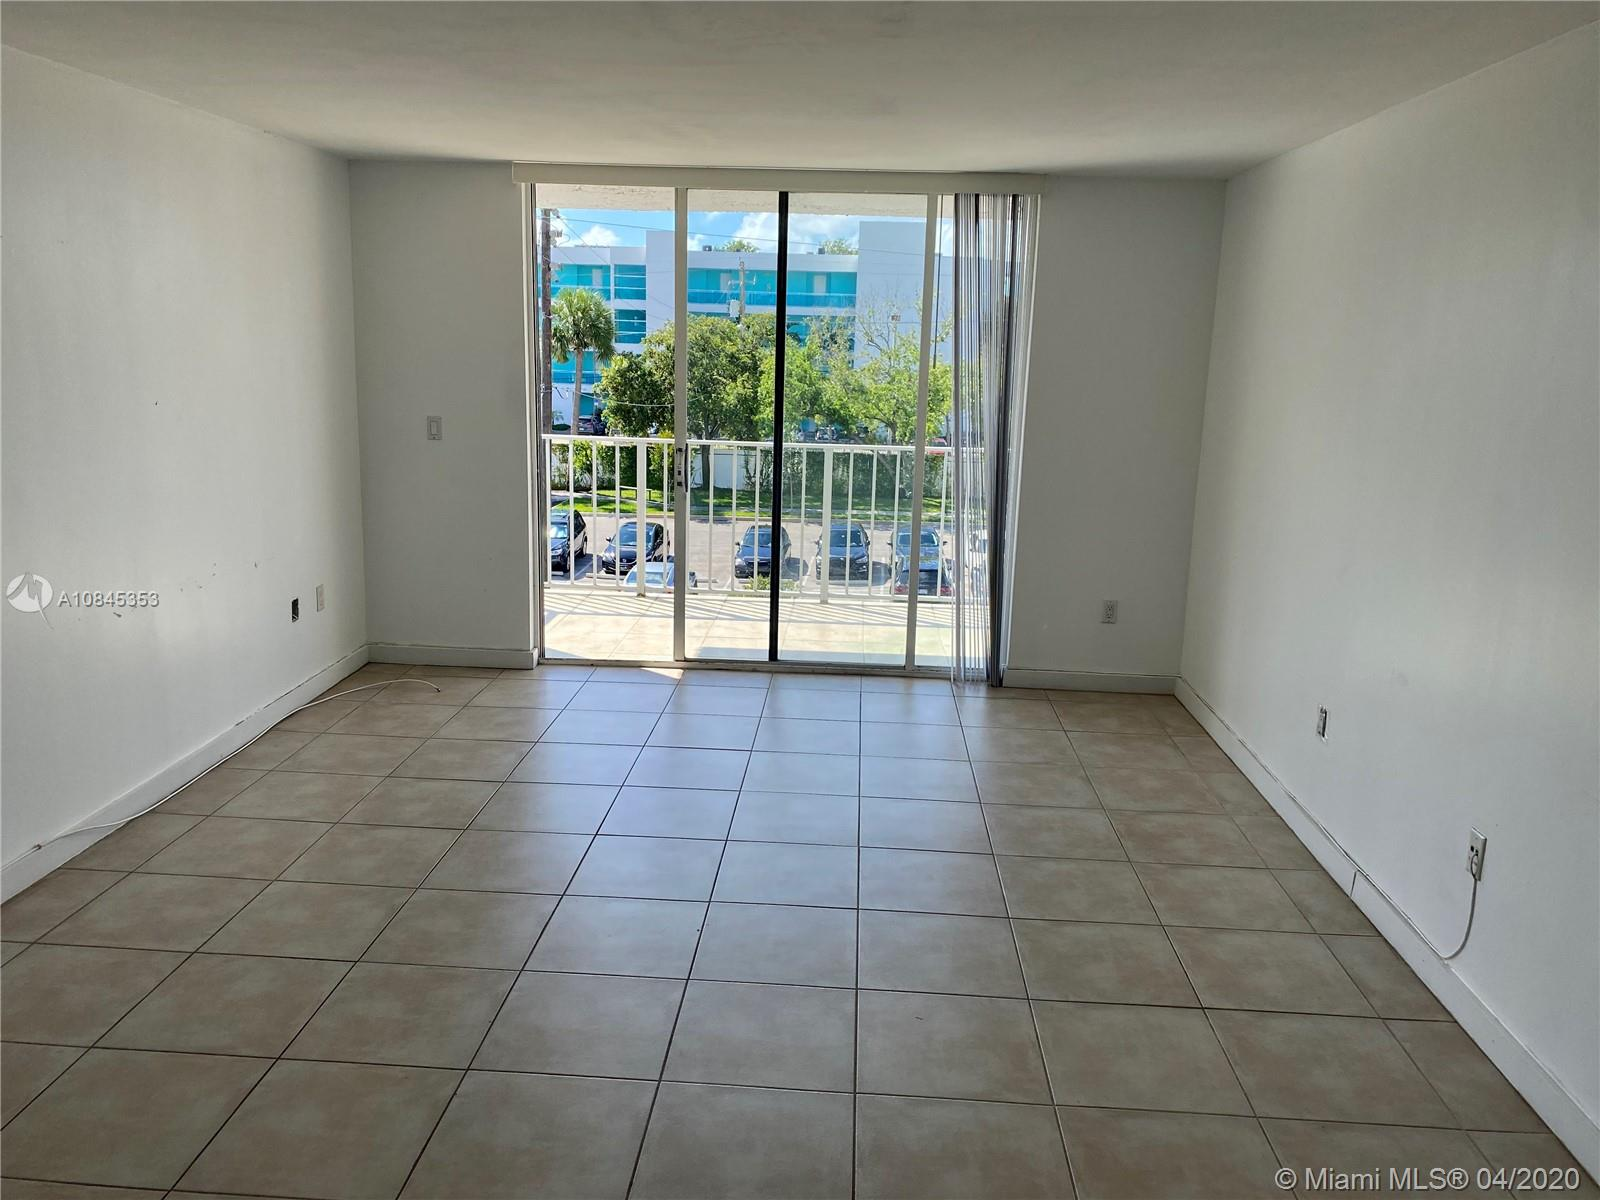 650 NE 64th St # G306, Miami, Florida 33138, 1 Room Rooms,1 BathroomBathrooms,Residential,For Sale,650 NE 64th St # G306,A10845353